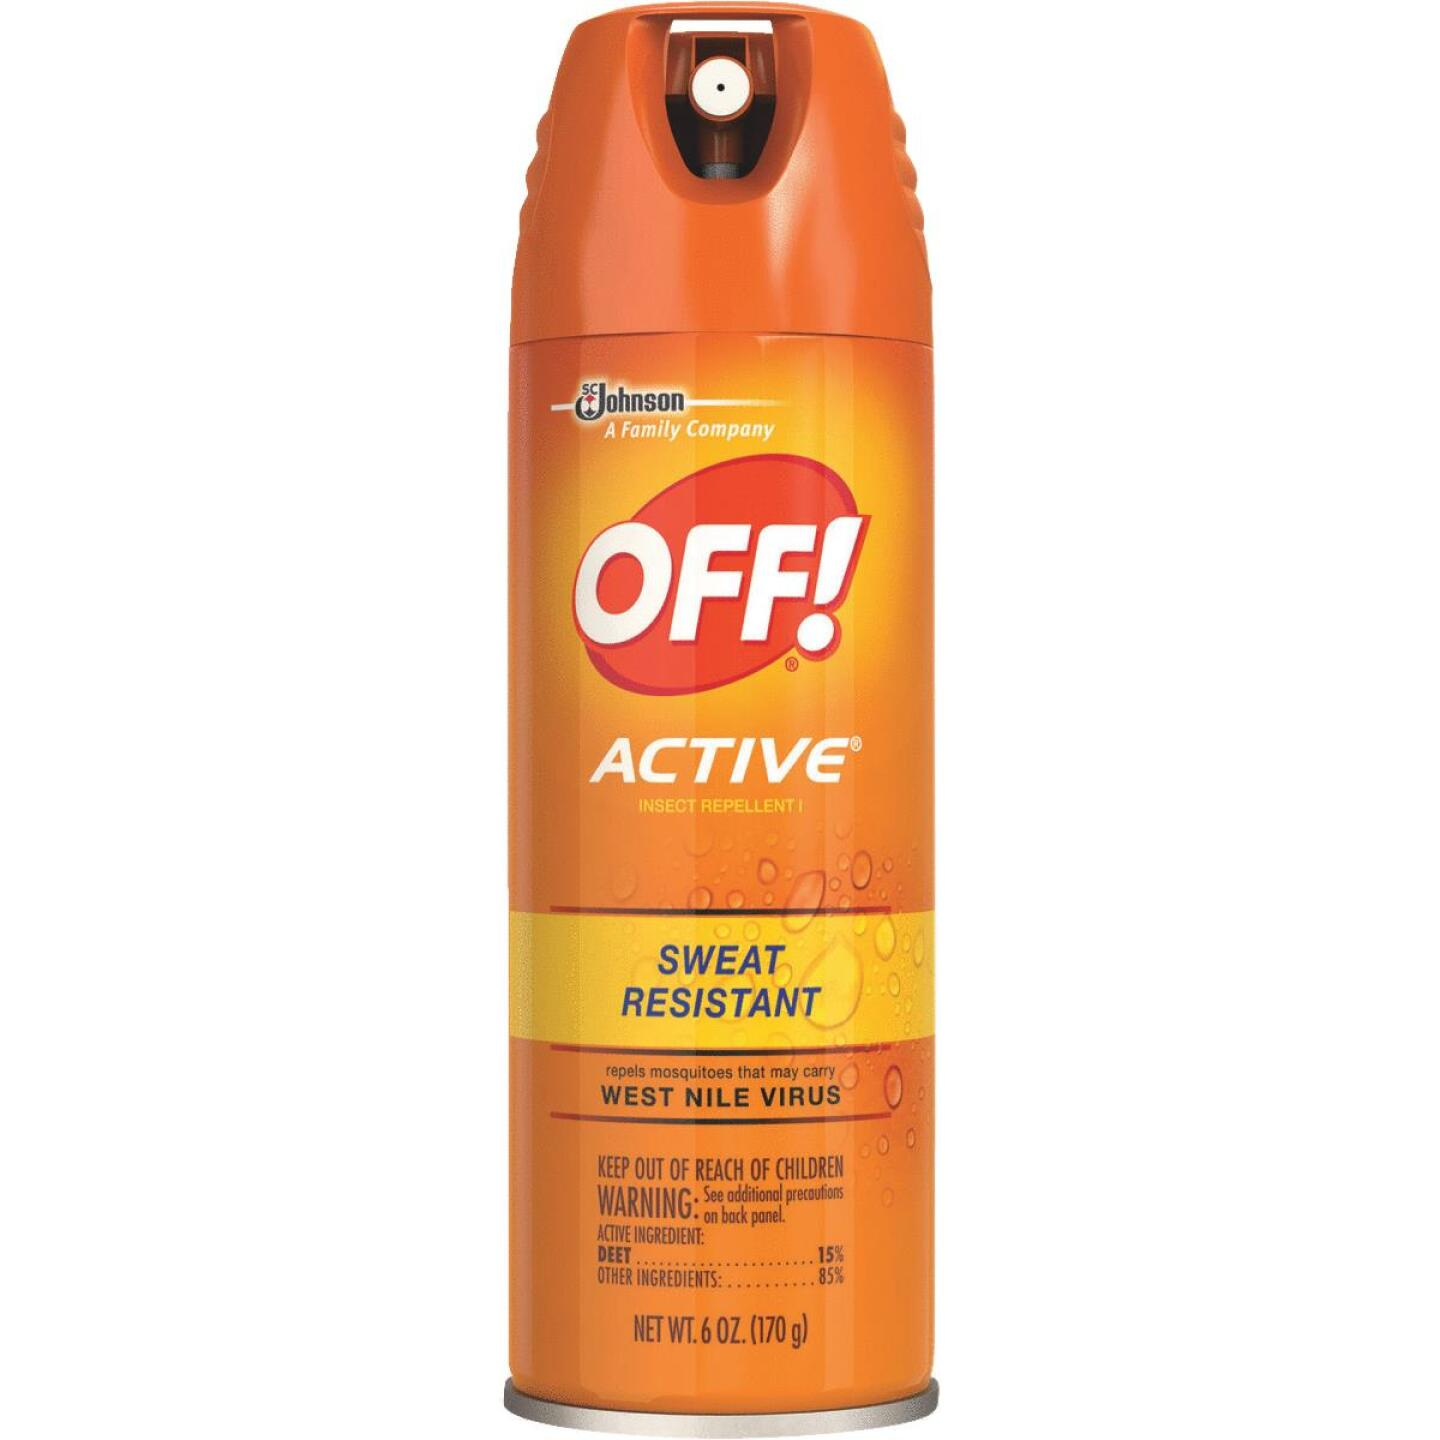 Off Active 6 Oz. Insect Repellent Aerosol Spray Image 1